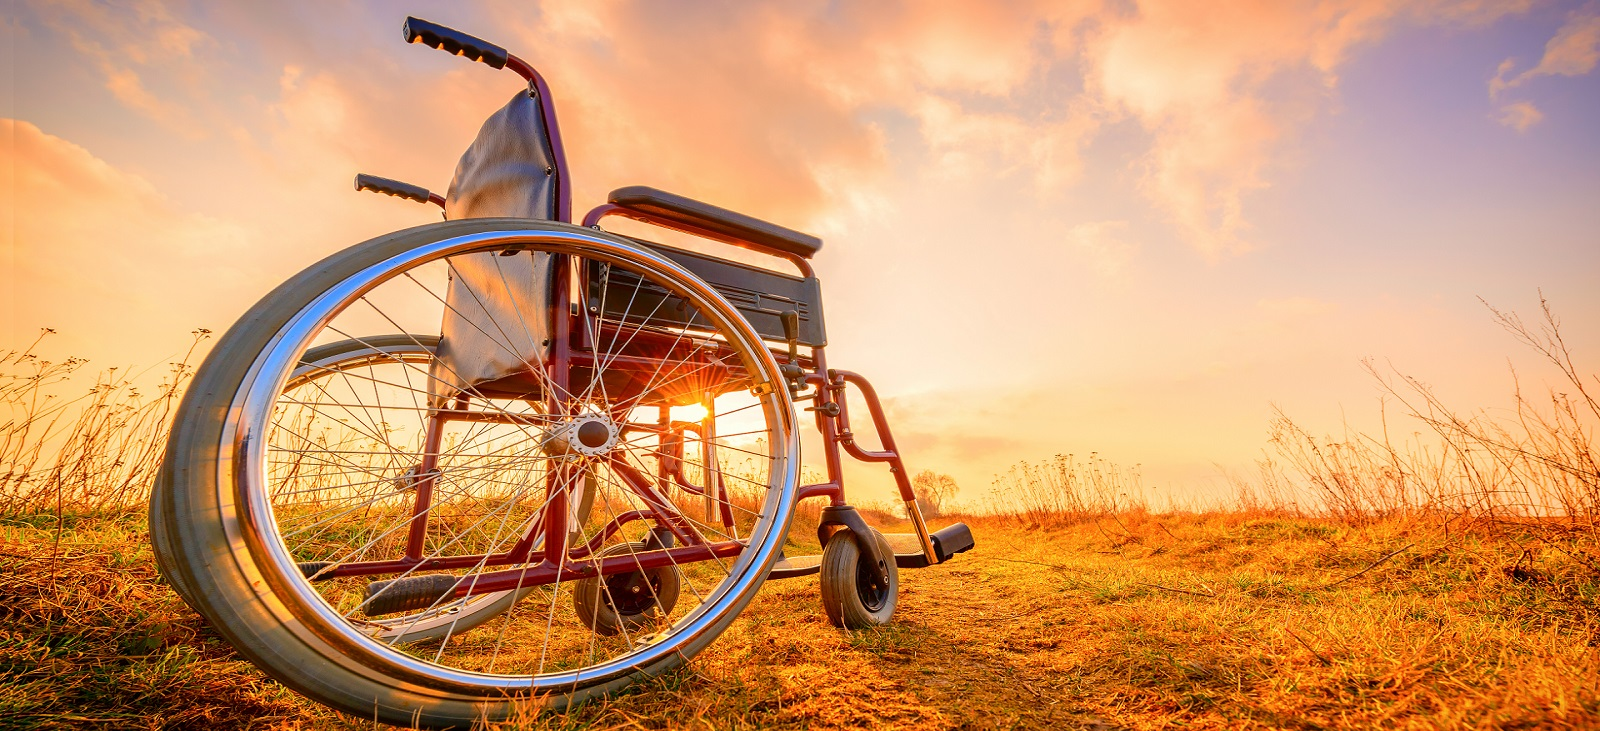 An empty wheel chair by the field while the sun is setting.